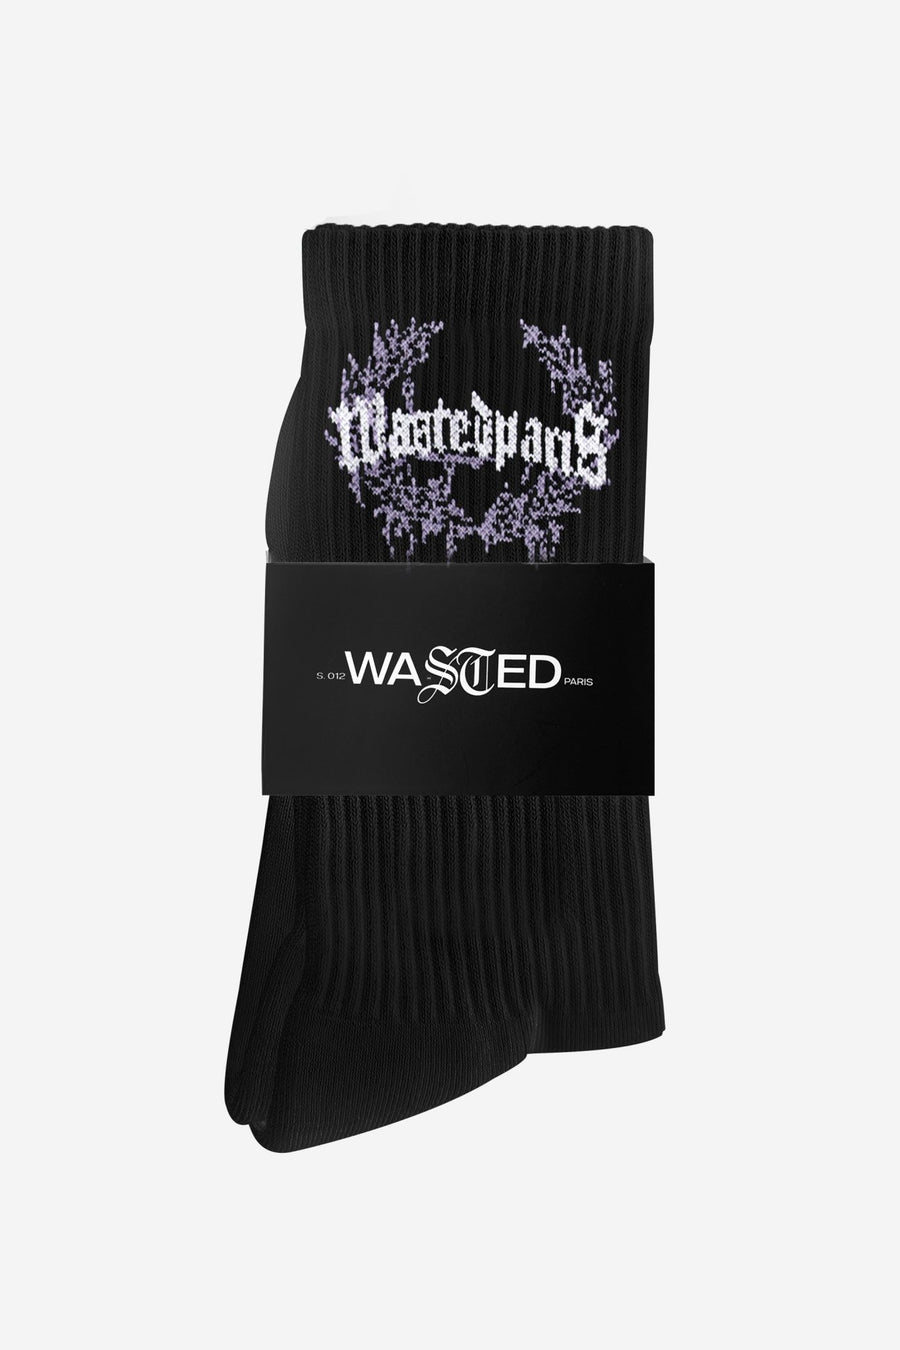 Chaussettes Columbia Noires - WASTED PARIS